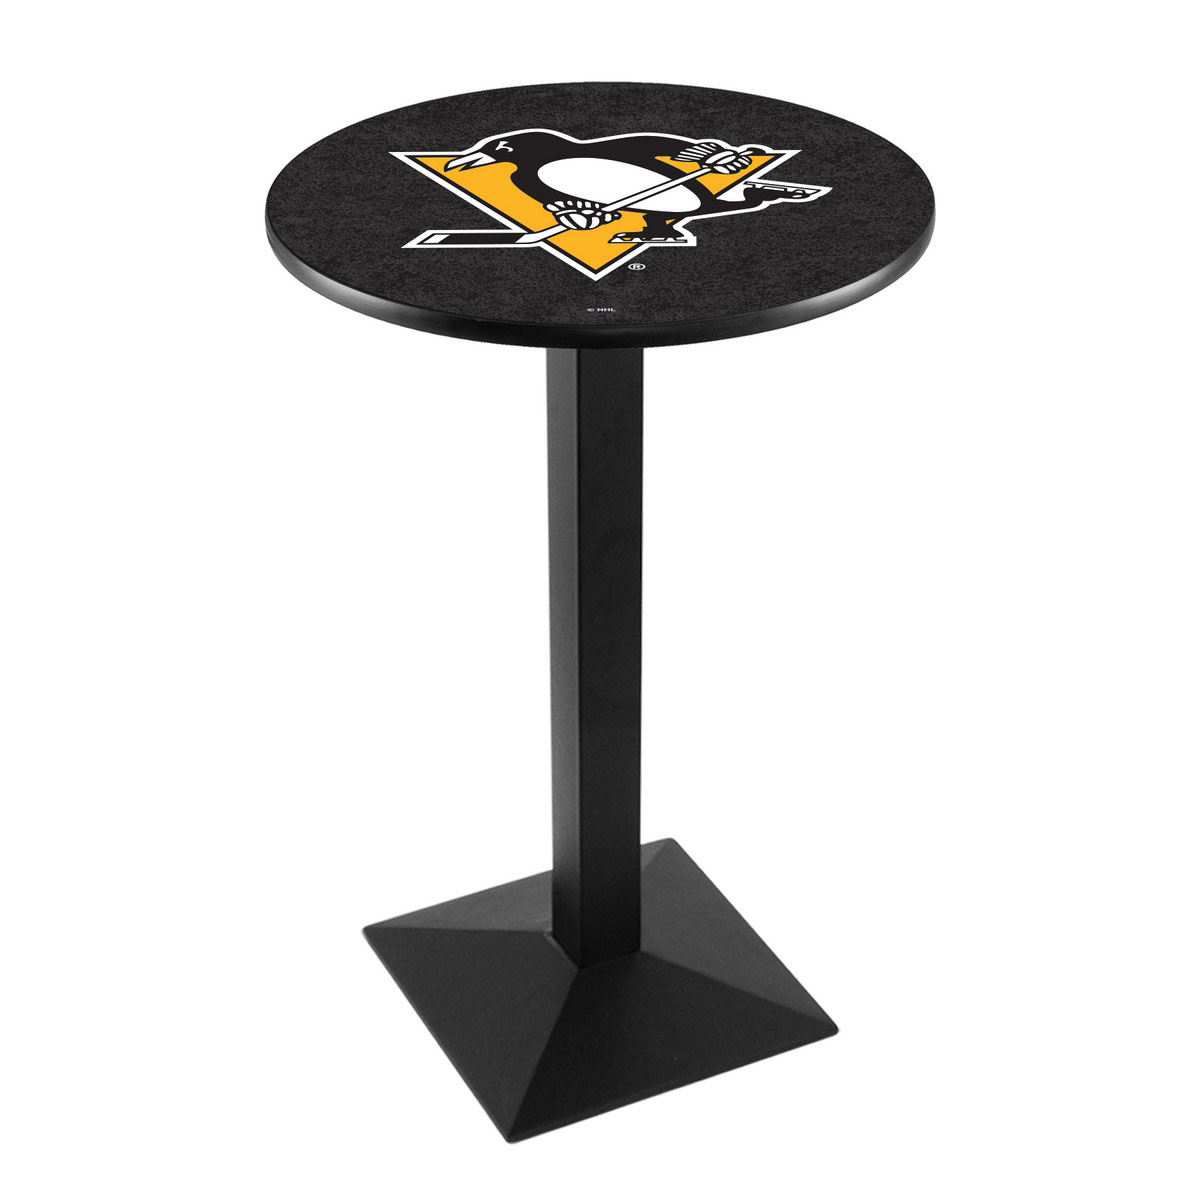 Popular Pittsburgh Penguins Logo Pub Bar Table Square Stand 16 634